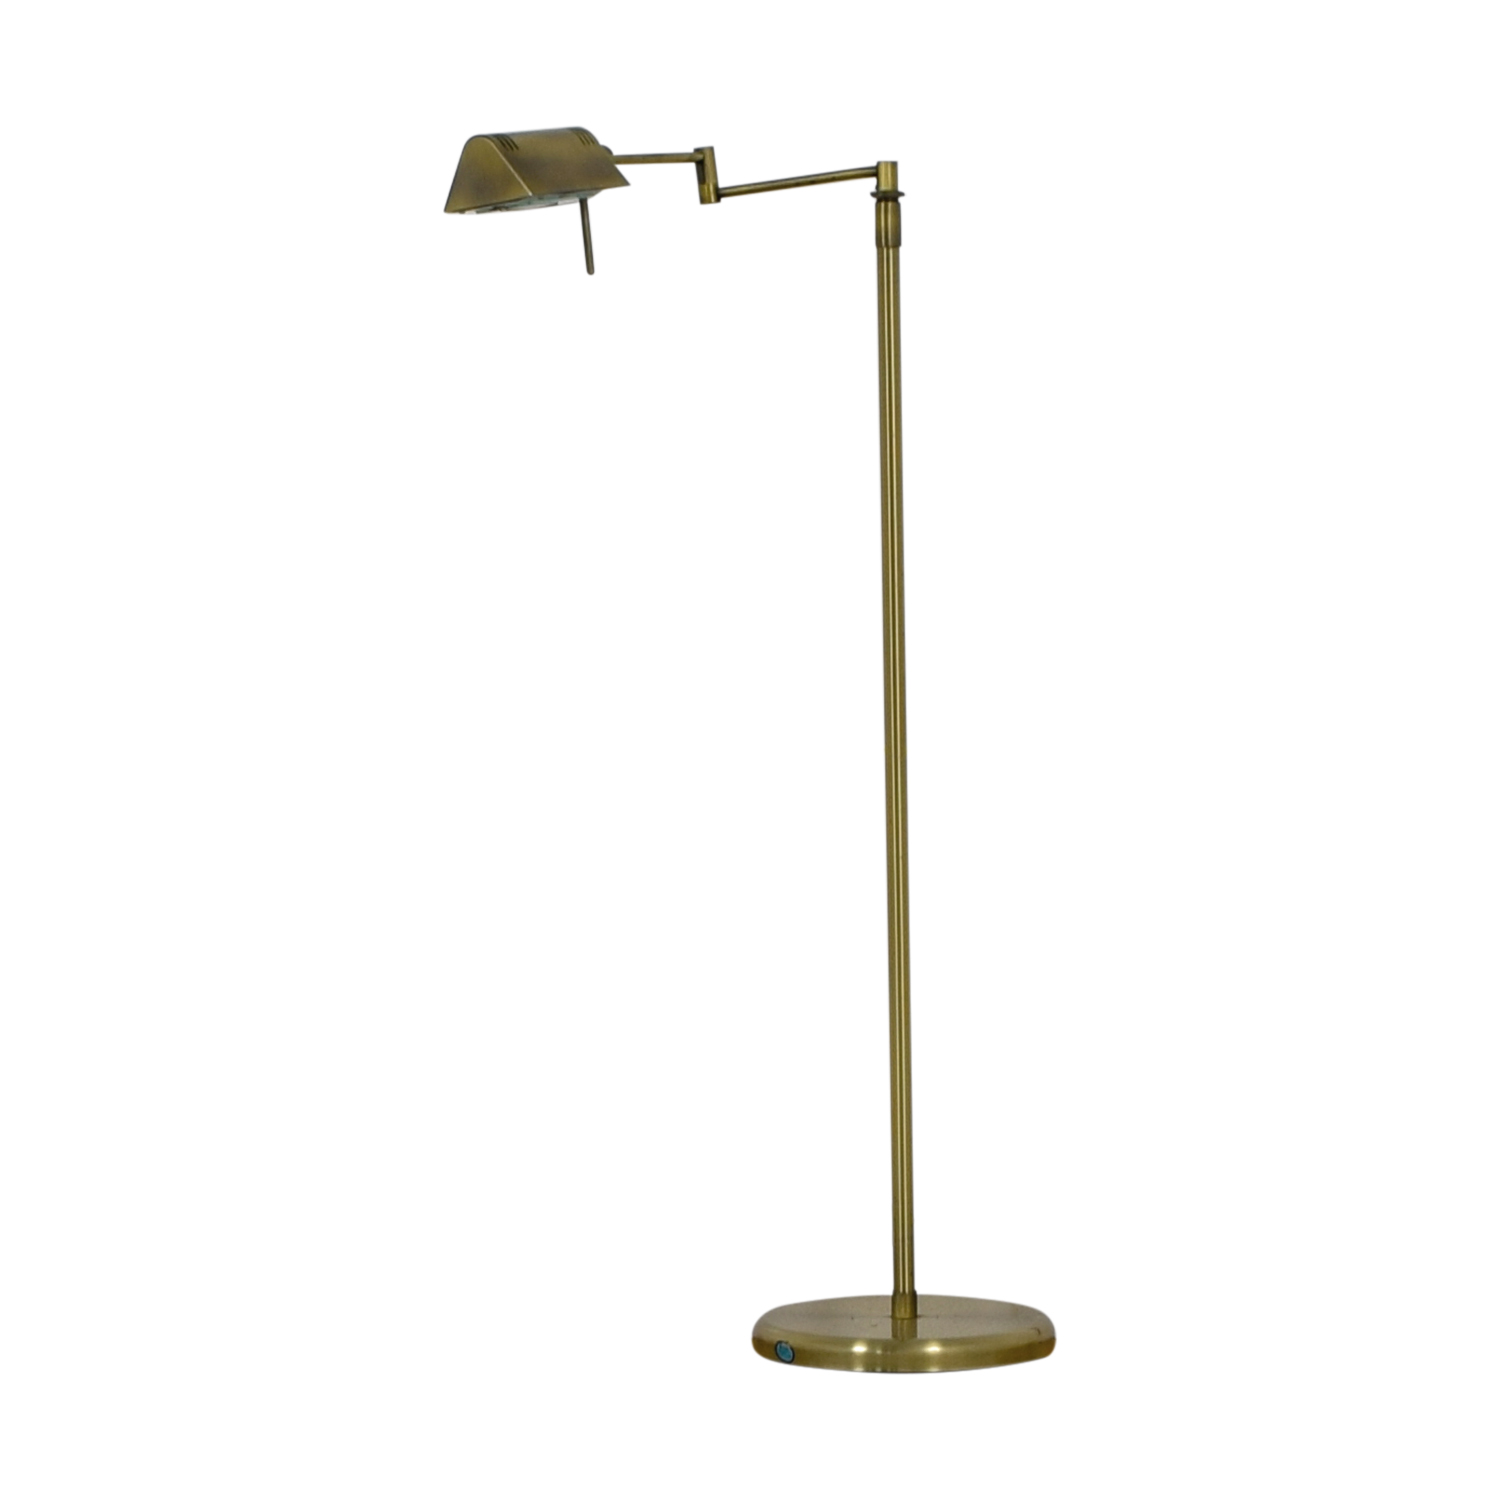 Marwill Lighting Collection Marwill Lighting Collection Antique Brass Swivel Floor Lamp nj